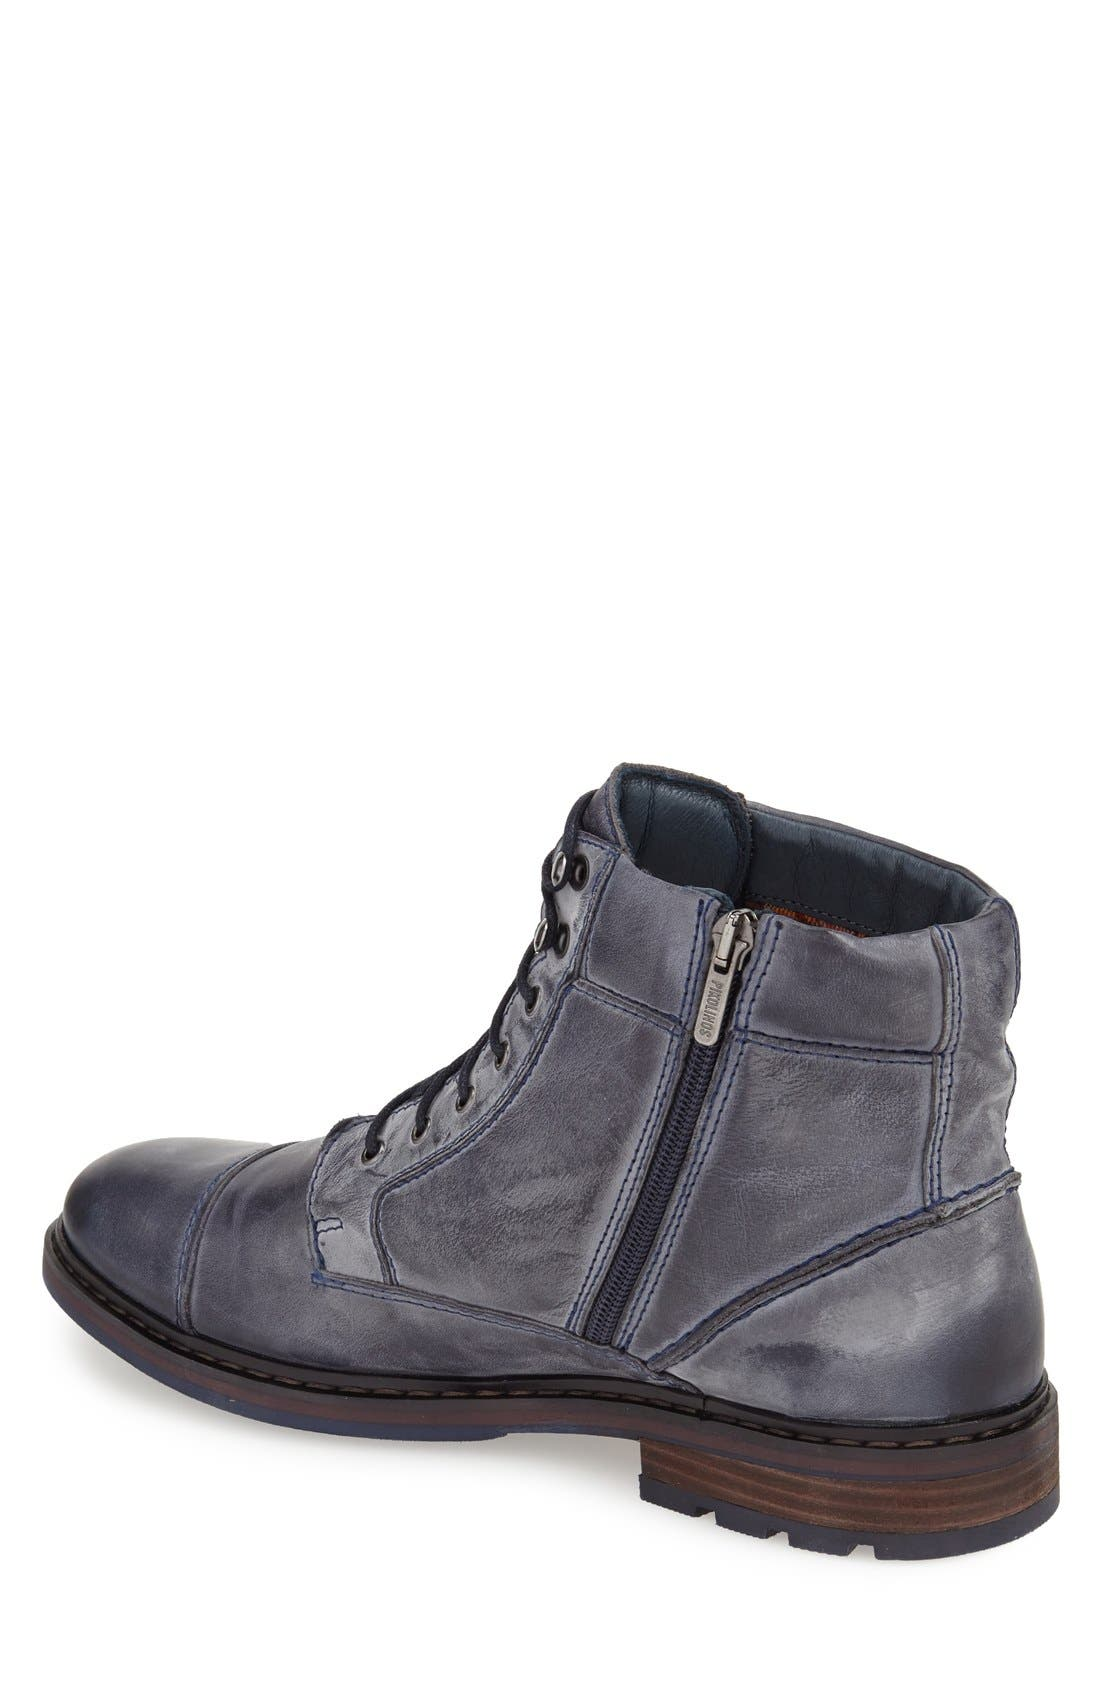 'Cacers' Lace-Up Zip Boot,                             Alternate thumbnail 6, color,